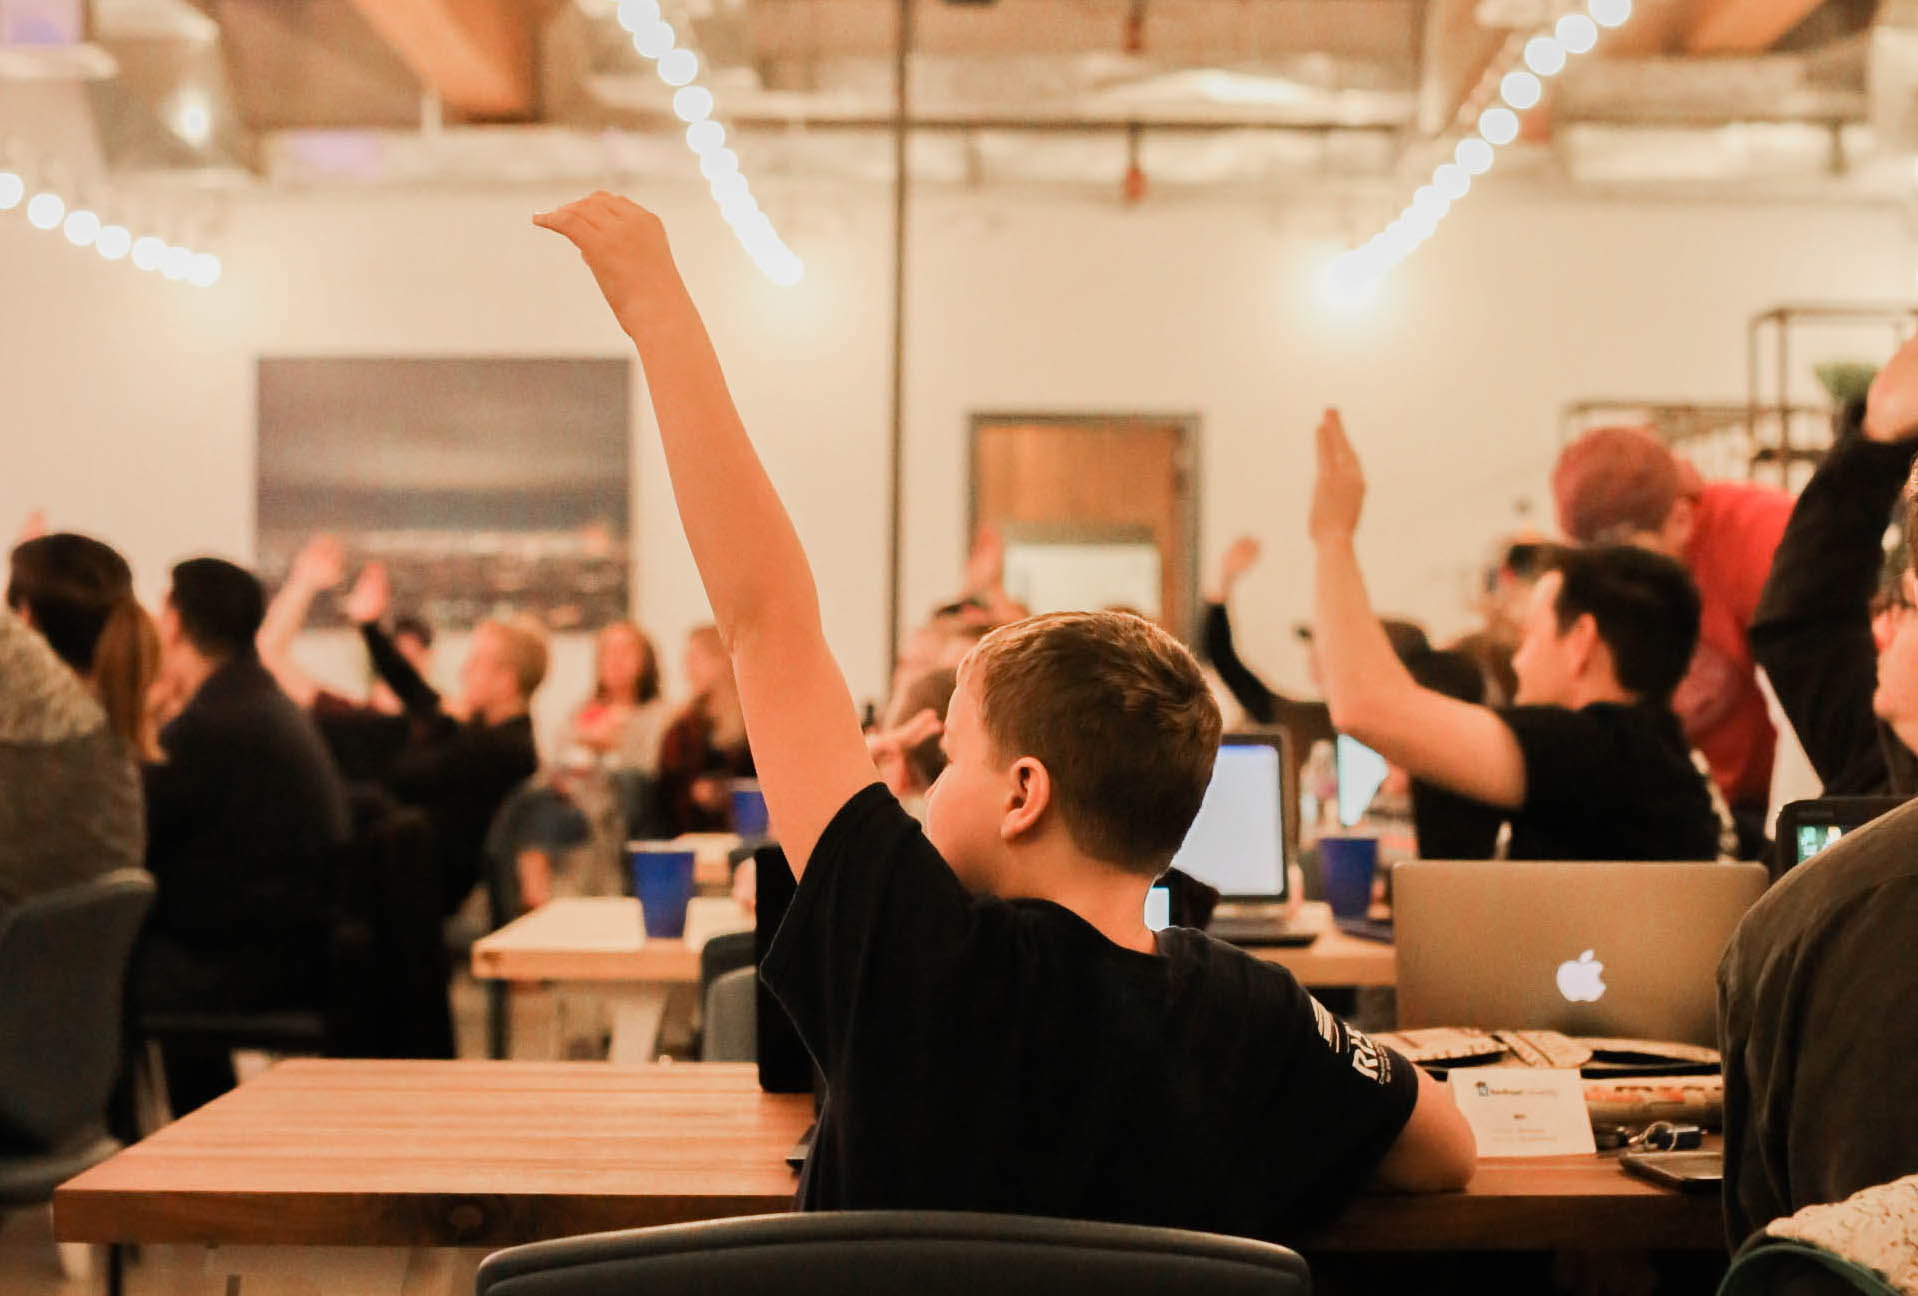 Student raising hand at a Skill Struck coding event